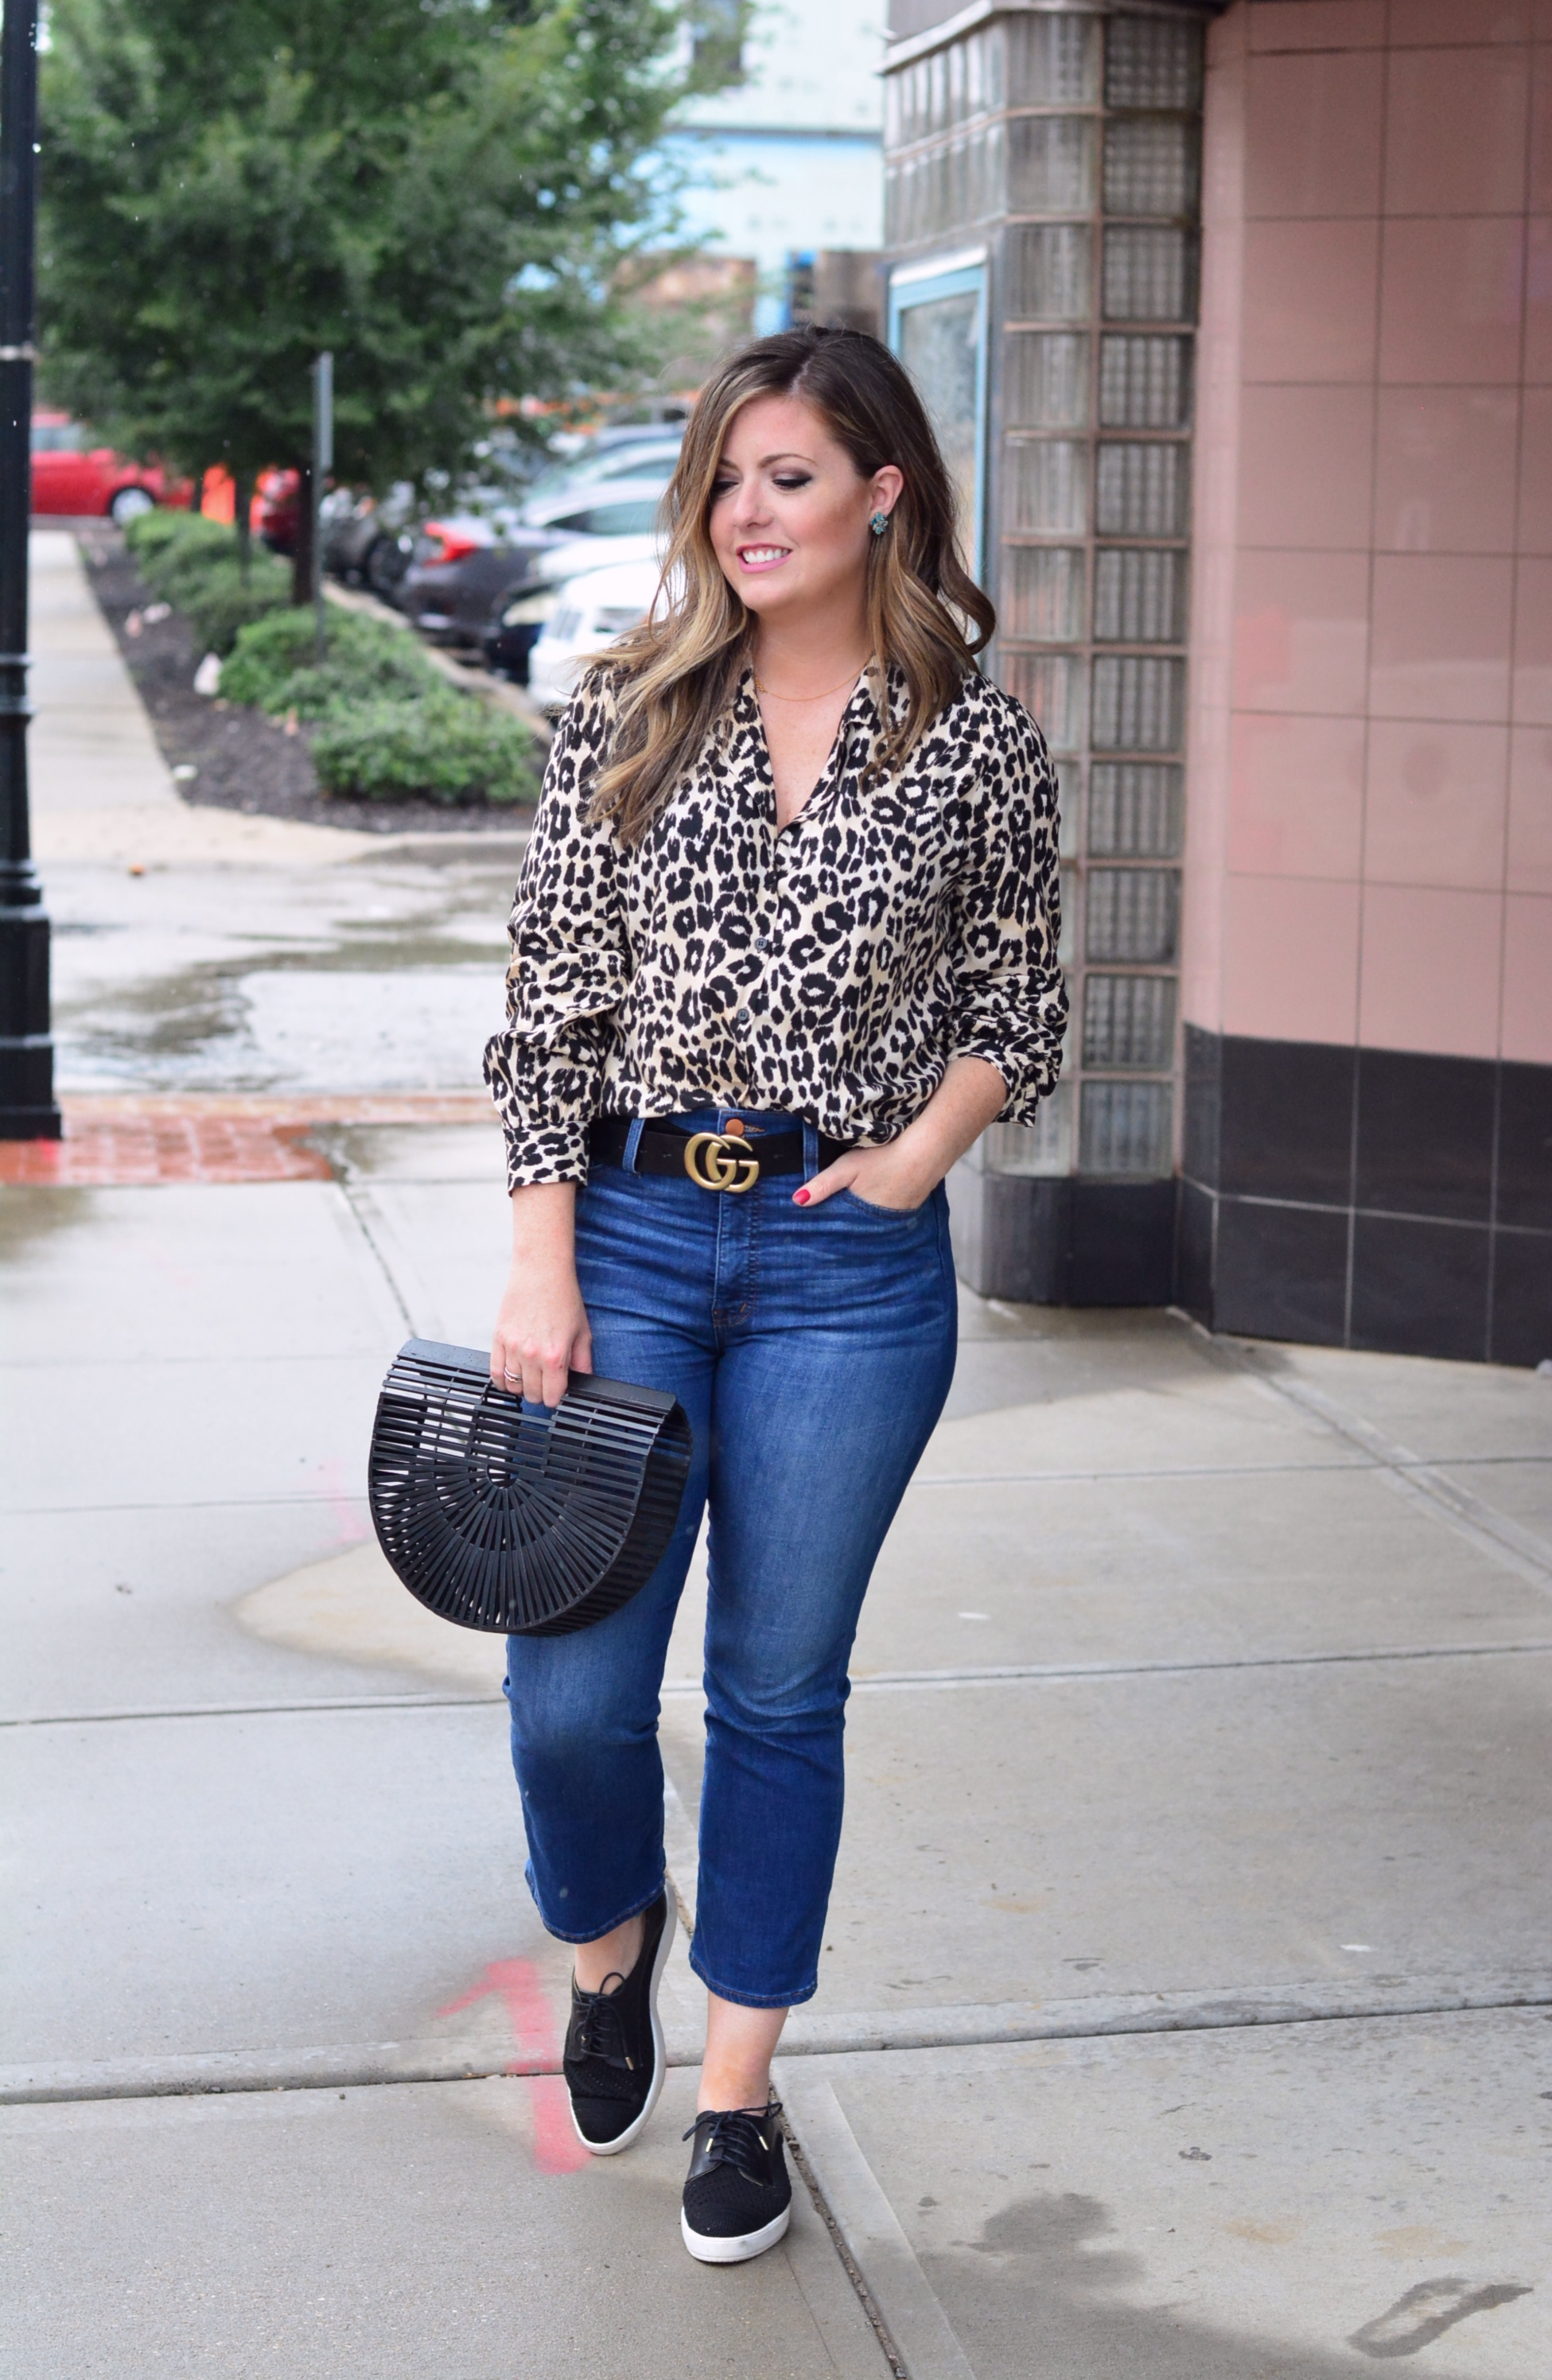 Leopard top outfit for fall | Sophisticated | Cait Fore